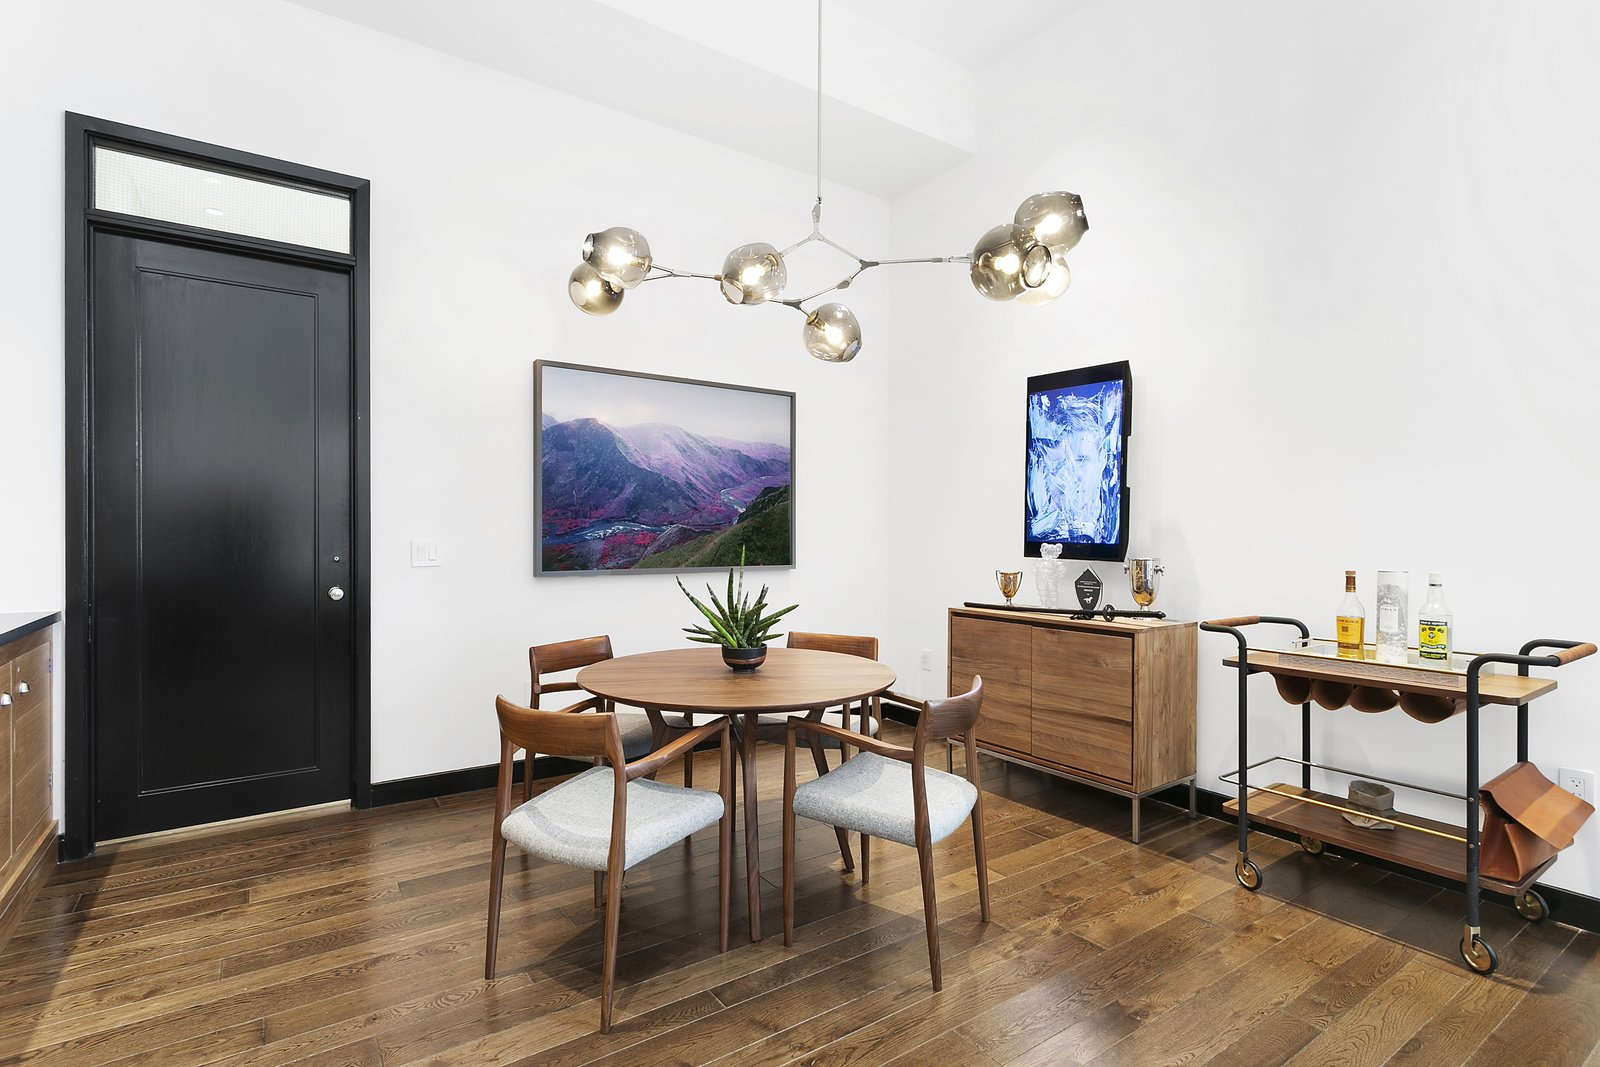 Dining Room, Table, Medium Hardwood Floor, Ceiling Lighting, Storage, Chair, and Bar 11J contains all of the necessary amenities for every day cooking as well as entertaining. Shown here is the beautiful dining area.  Expansive Pre-War Architecture Meets Stylish and Modern Living